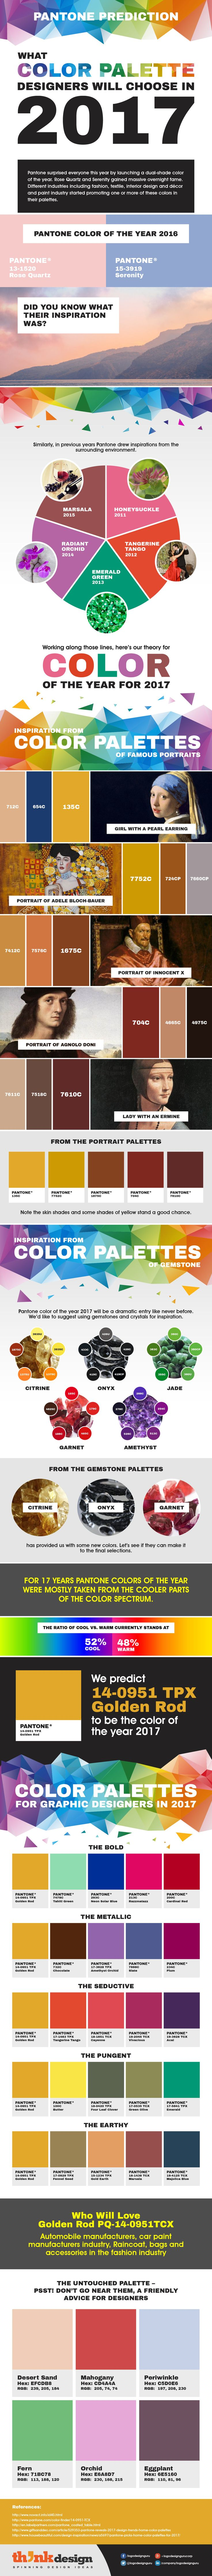 Pantone Prediction: What Color Palettes Designers Will Choose In 2017 @pantonecolor